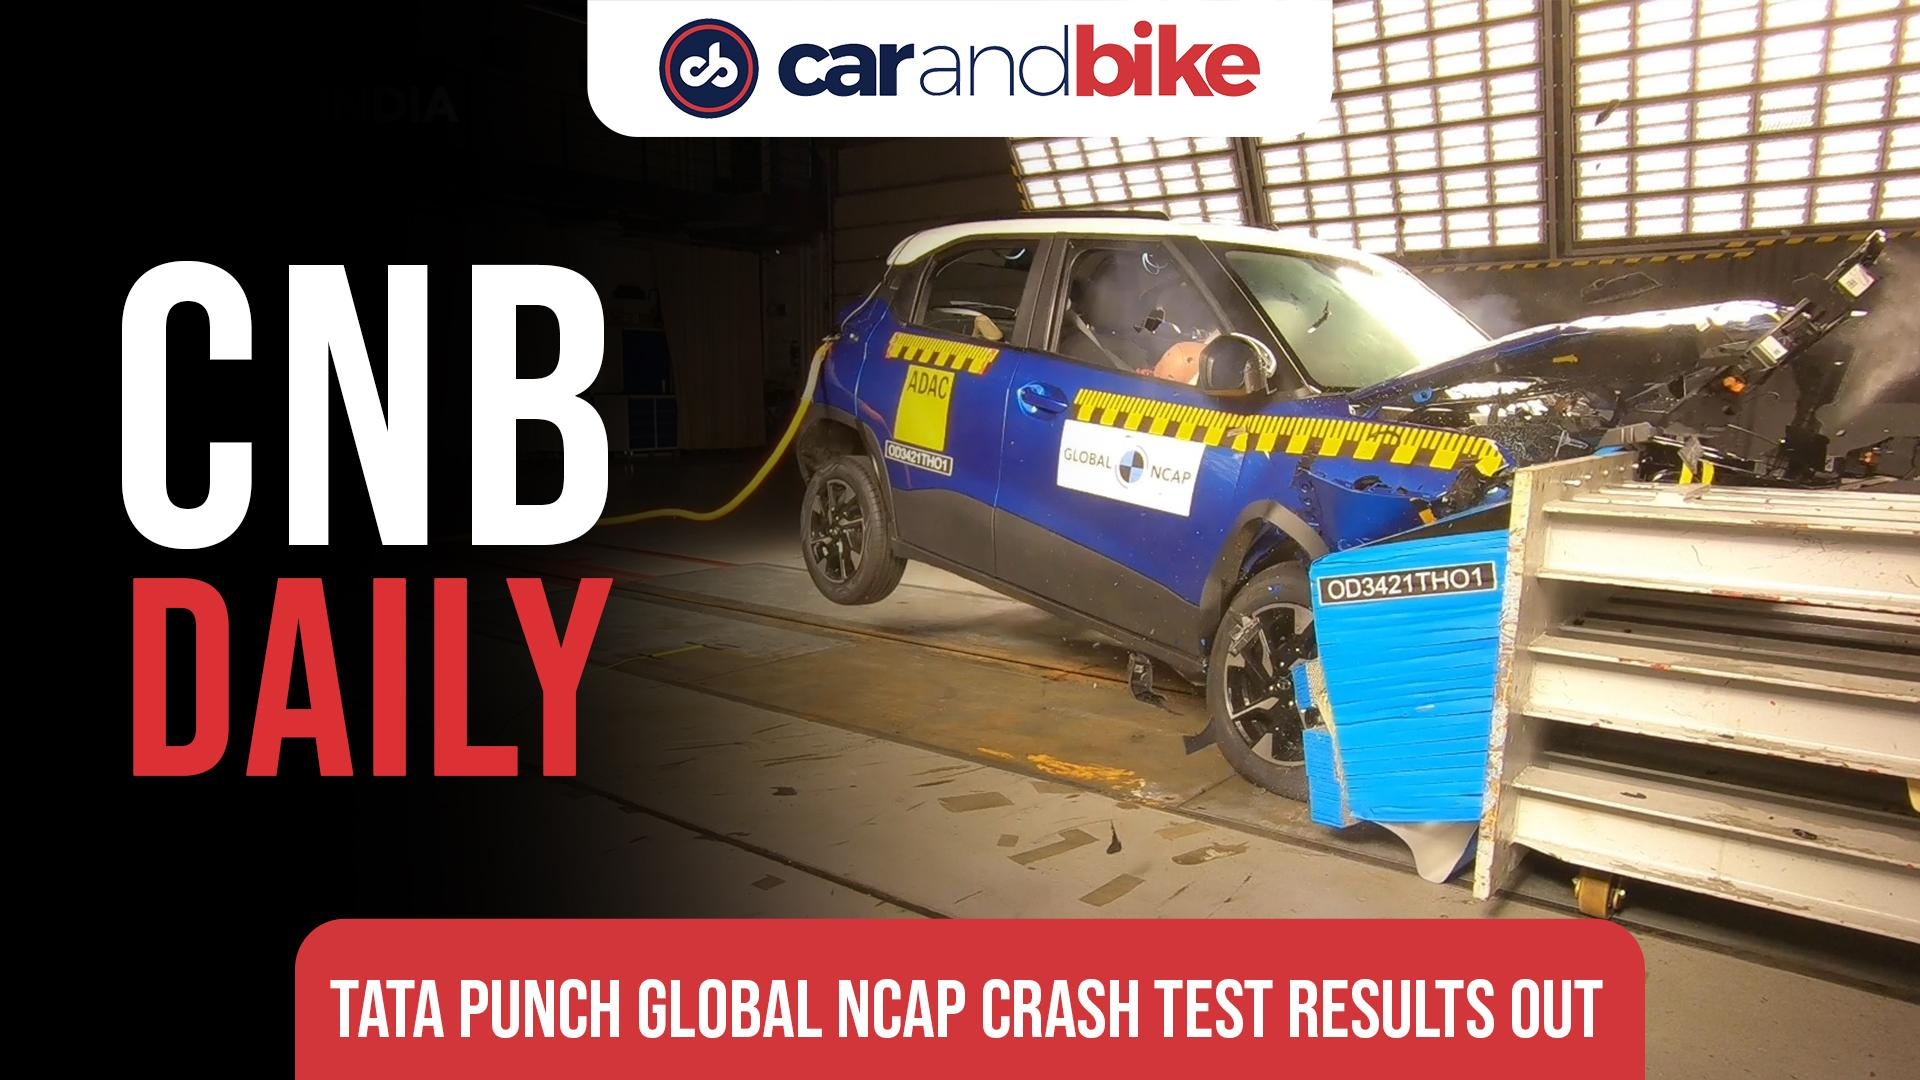 Tata Punch scores 5 stars in global NCAP crash test results